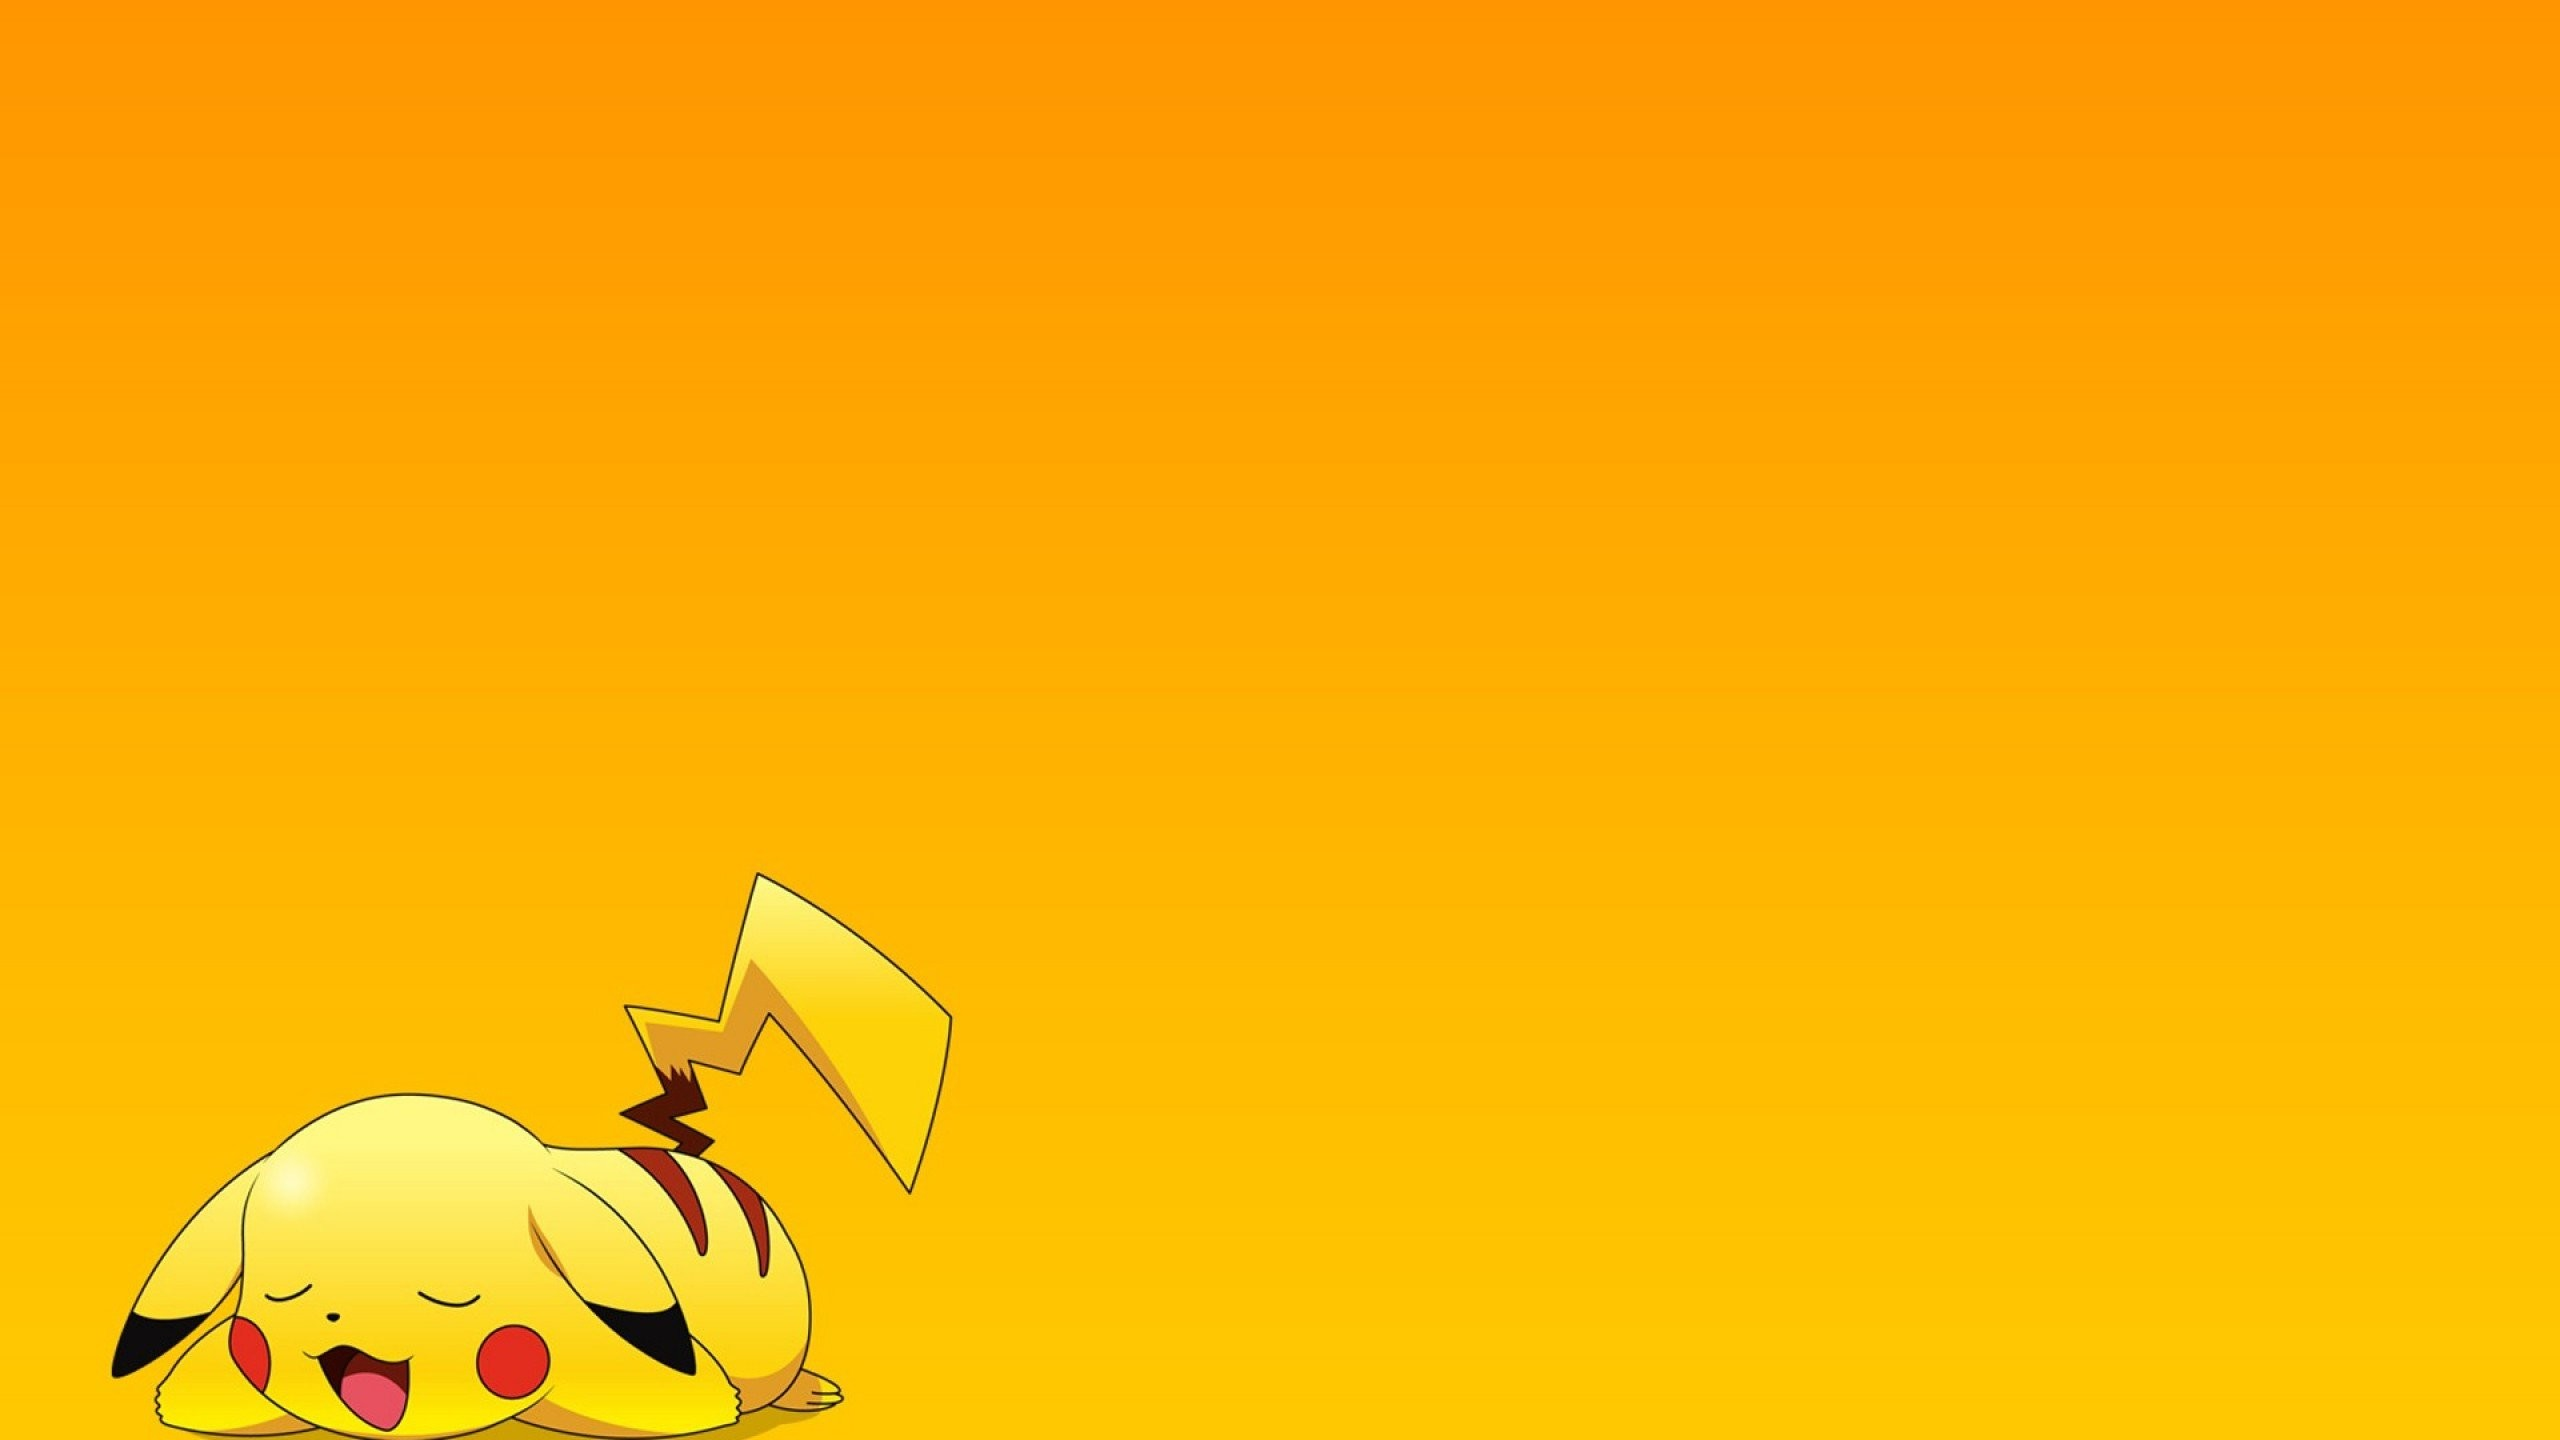 2560x1440 Pikachu HD Wallpapers Backgrounds Wallpaper